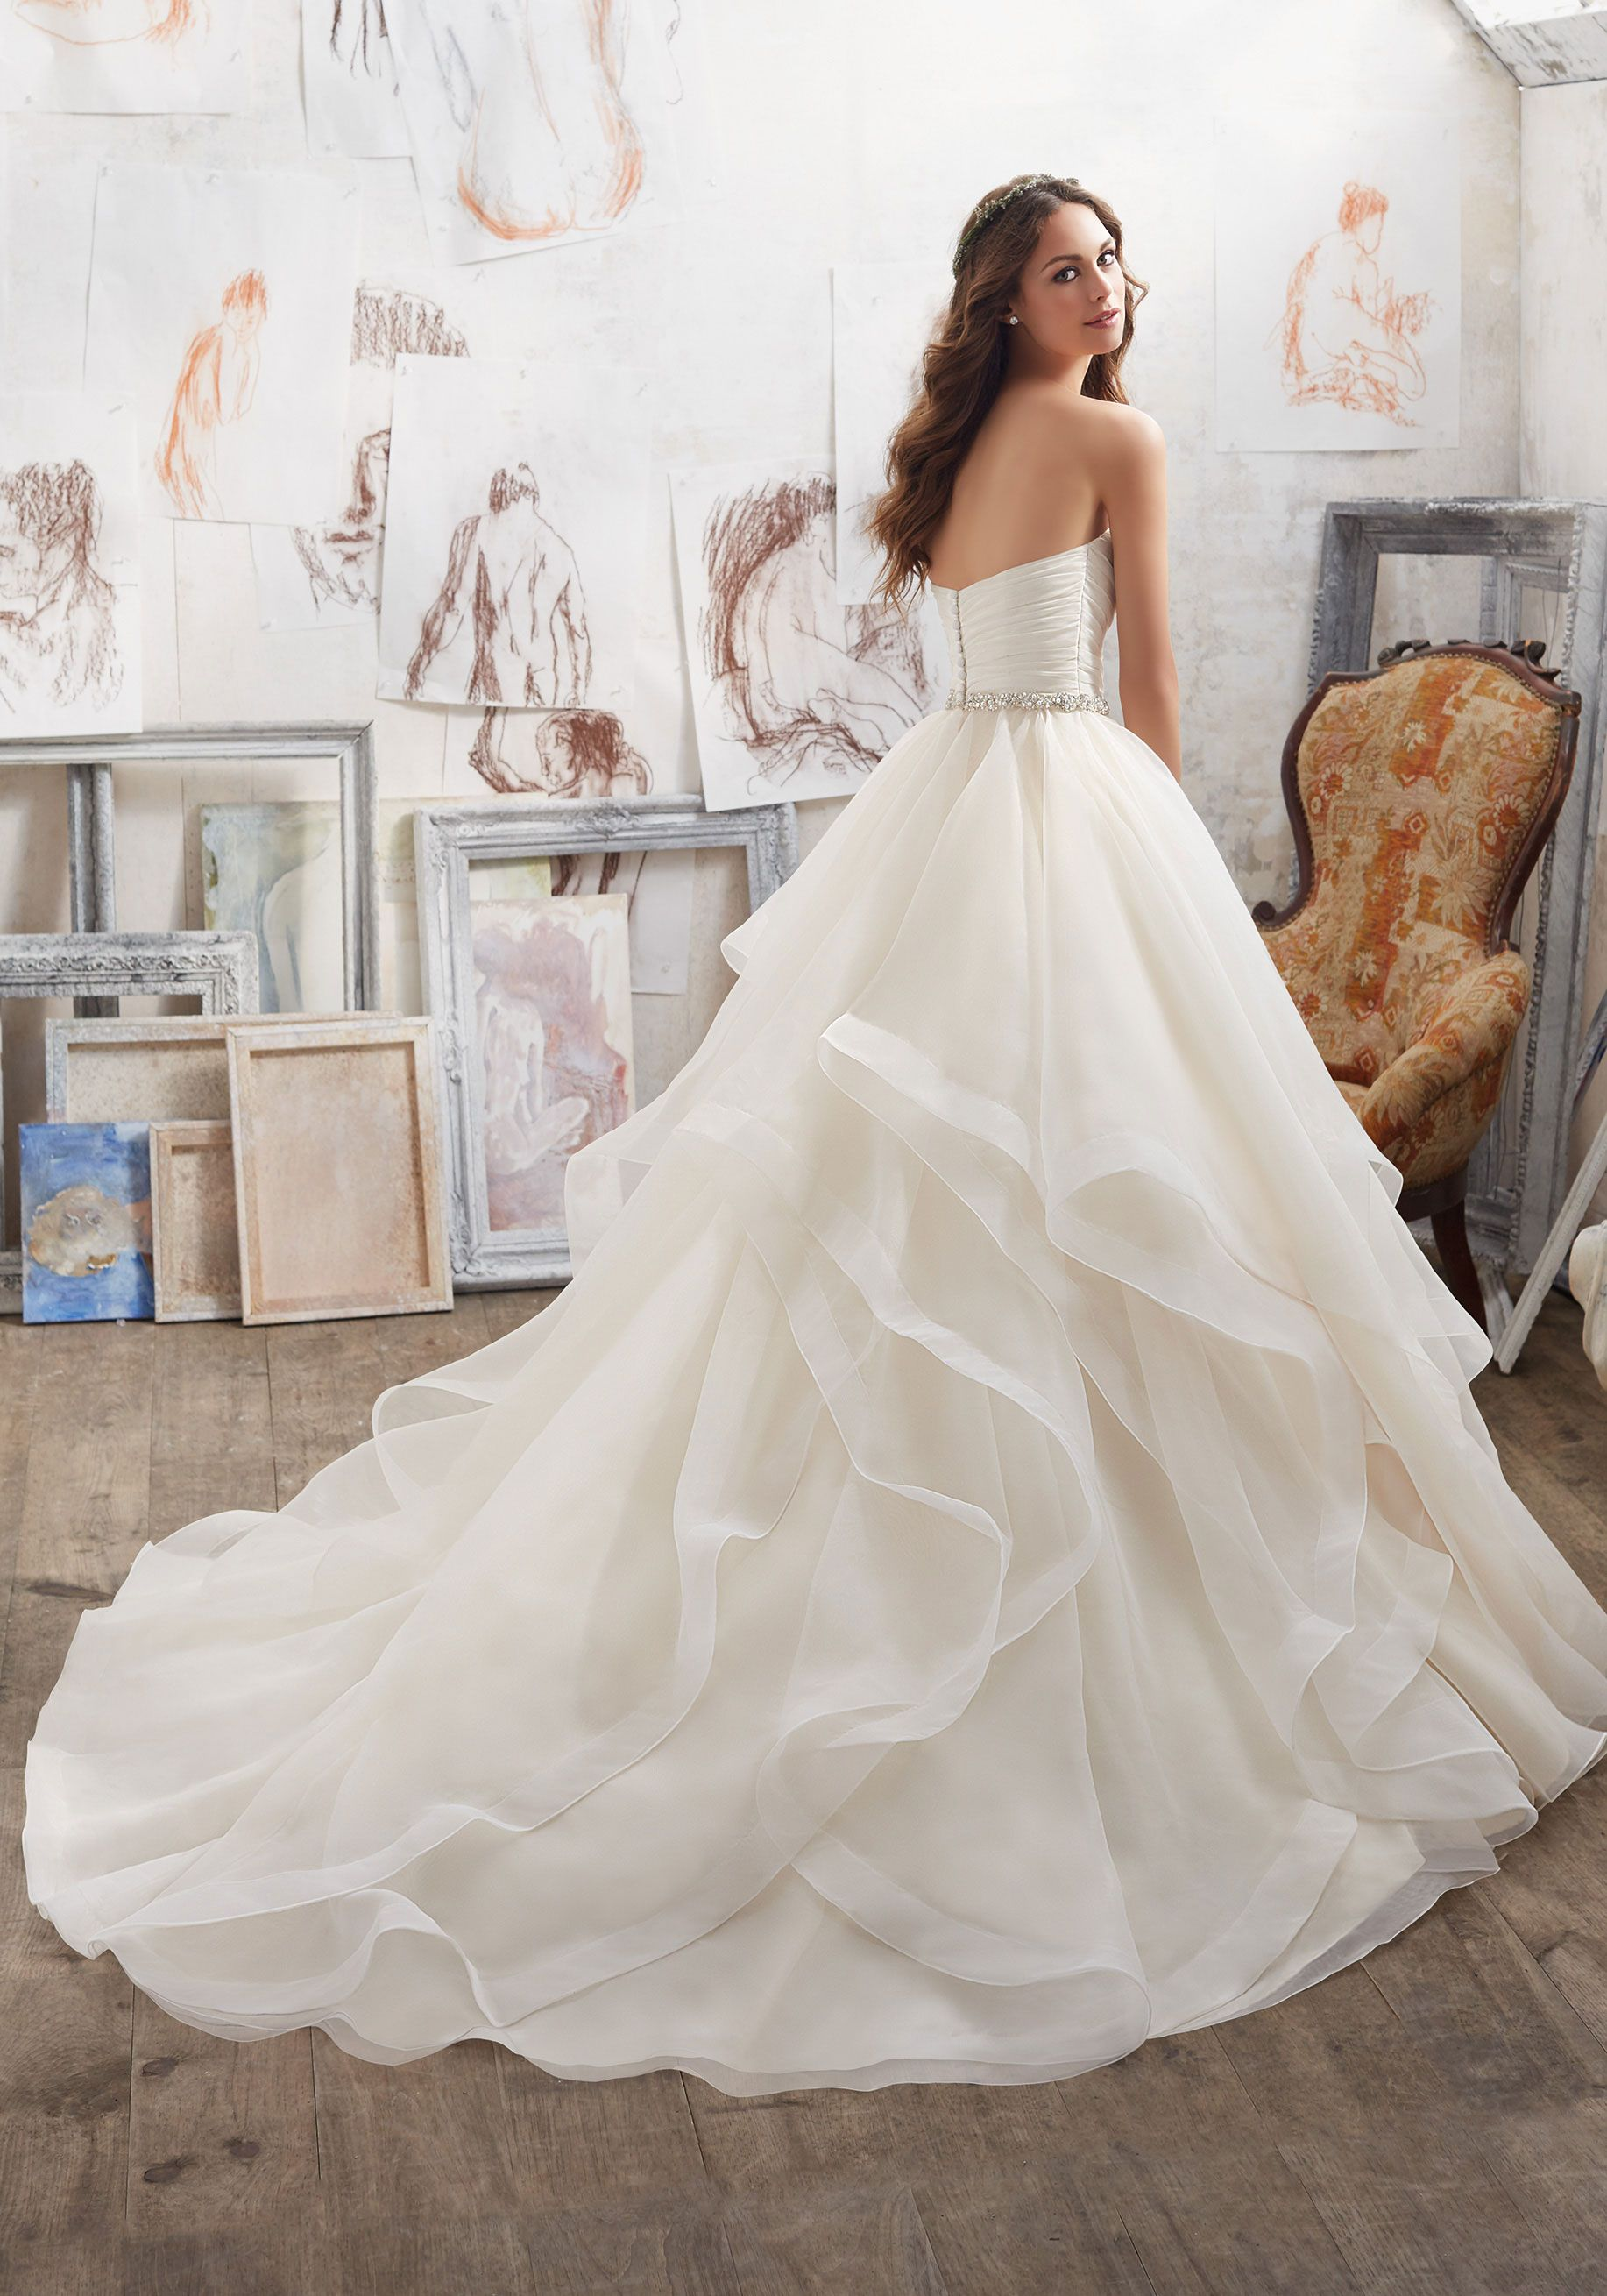 ec1b50619d 2017 Wedding Dresses and Bridal Gowns by Morilee designed by Madeline  Gardner. This Dreamy Organza Ballgown Features a Flounced Skirt with  Horsehair Trim.